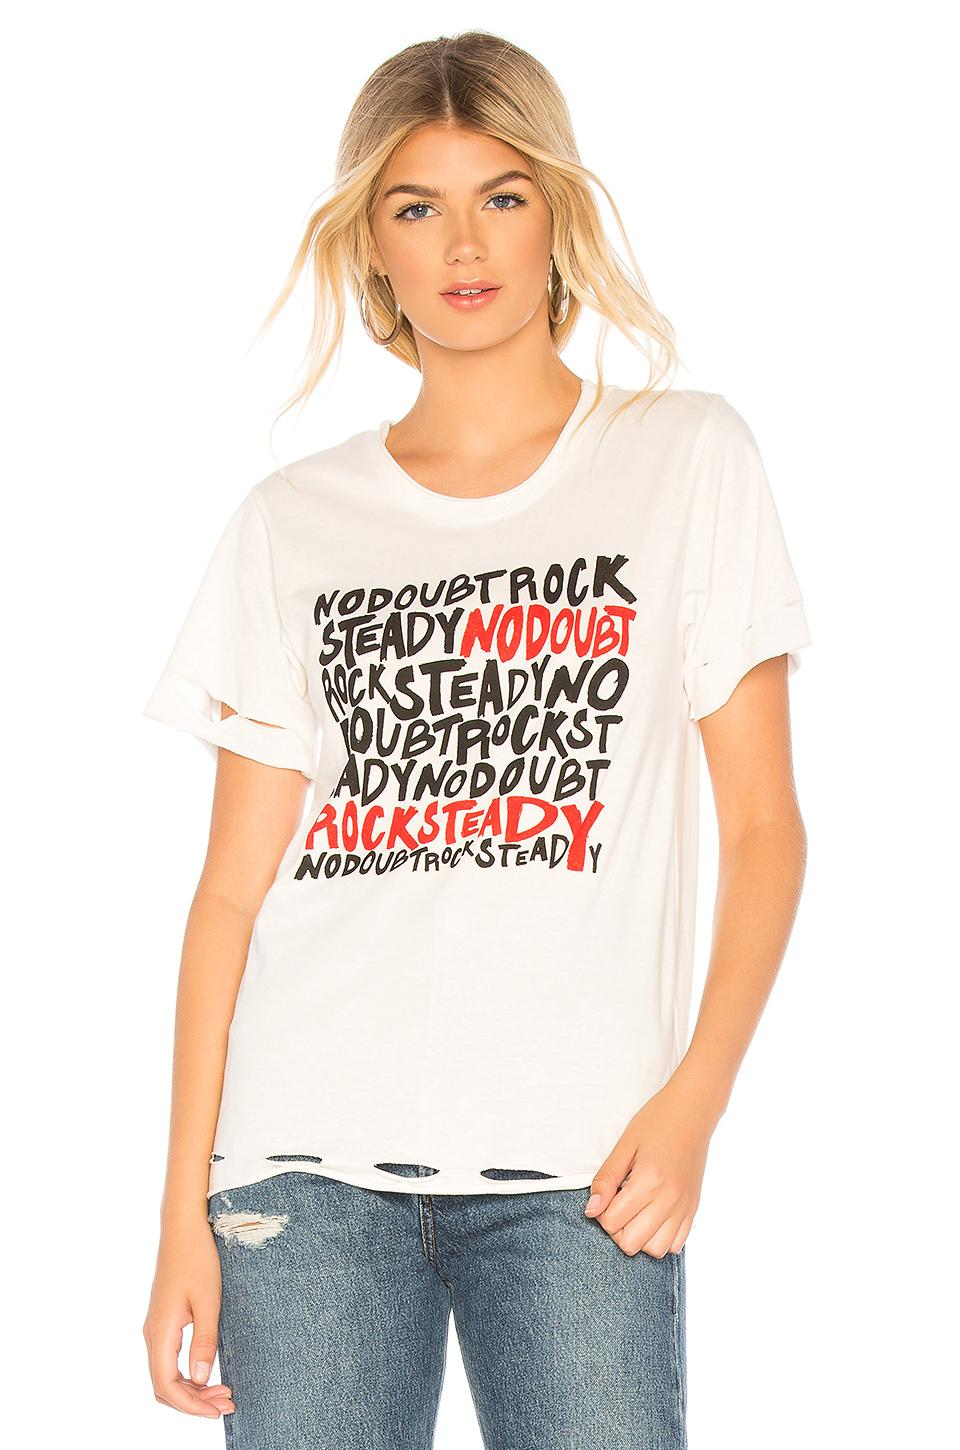 Daydreamer No Doubt Rock Steady Rebel Tee In Vintage White